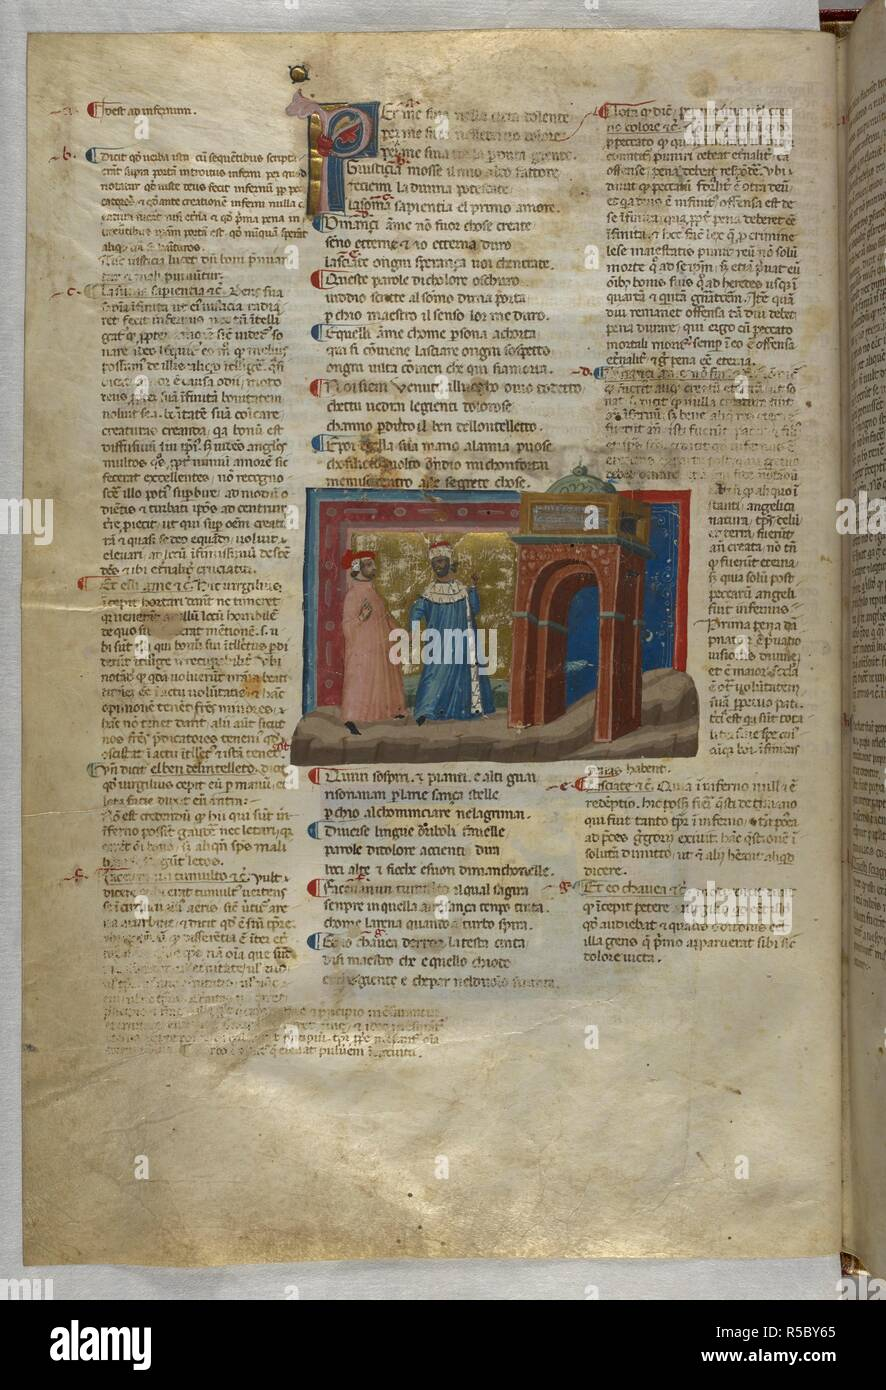 Inferno: Dante and Virgil arrive at the gates of hell. Dante Alighieri, Divina Commedia ( The Divine Comedy ), with a commentary in Latin. 1st half of the 14th century. Source: Egerton 943, f.6v. Language: Italian, Latin. - Stock Image